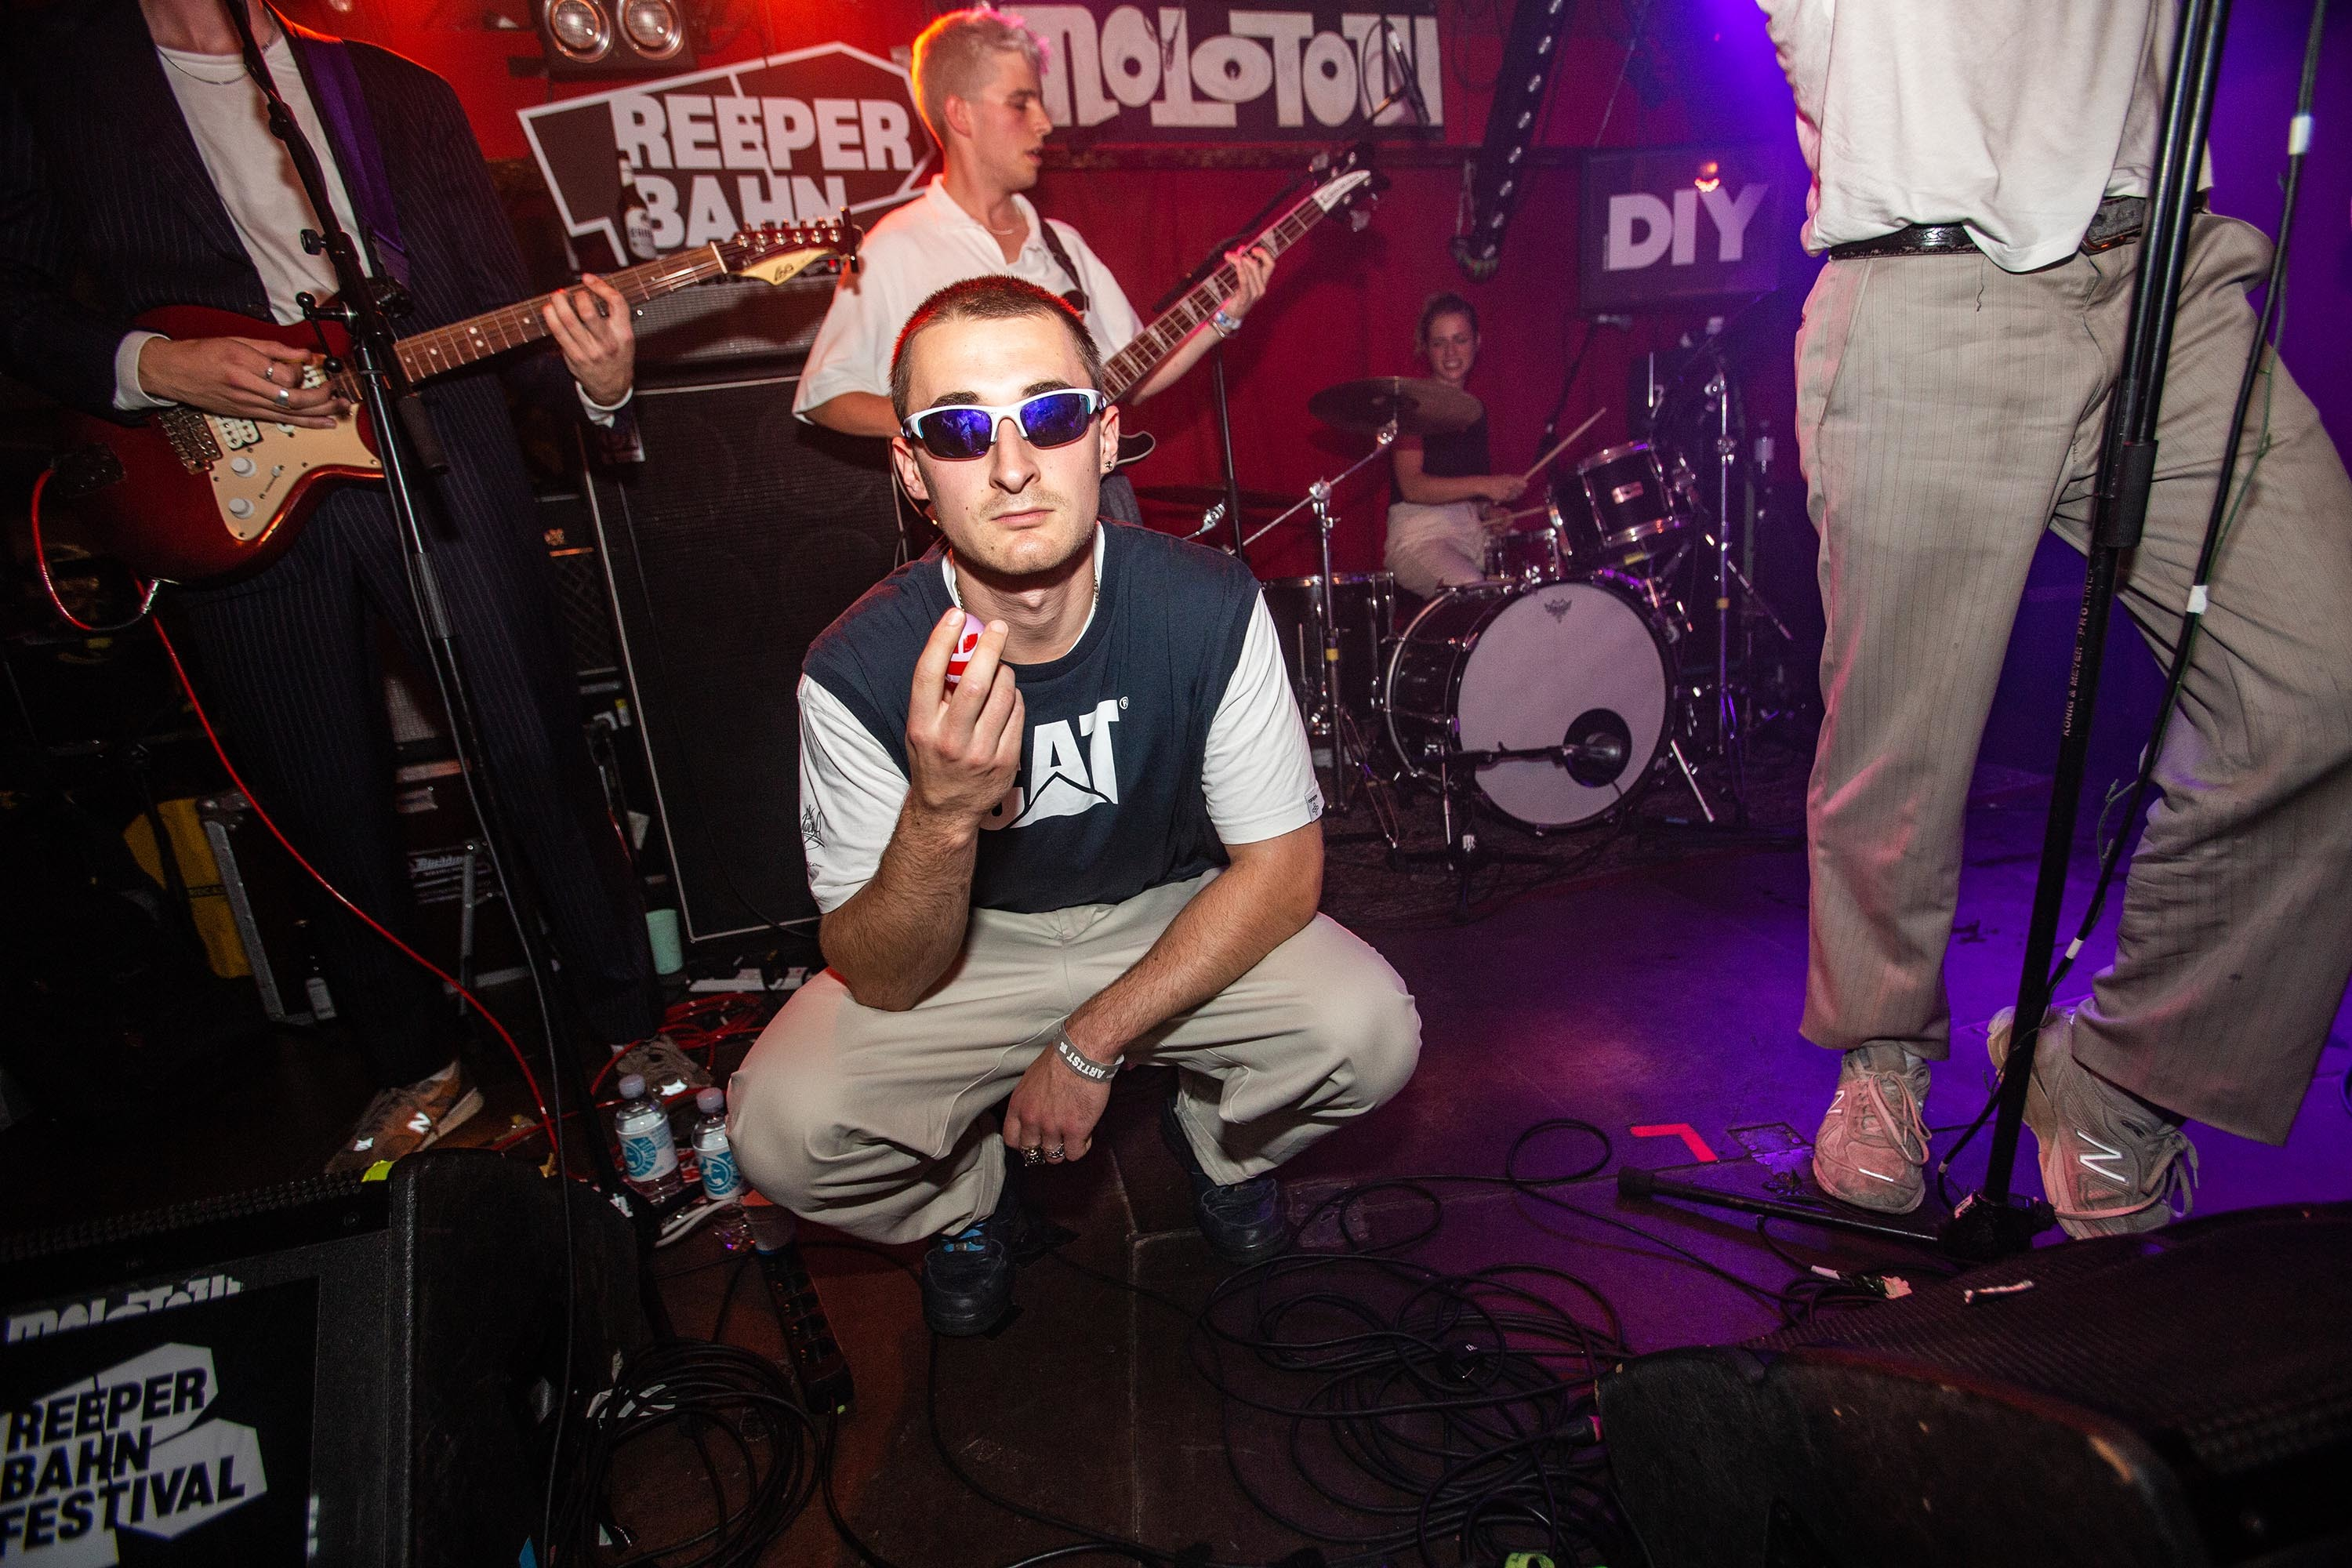 Sports Team close out Reeperbahn 2019 with a high octane set on the DIY Stage